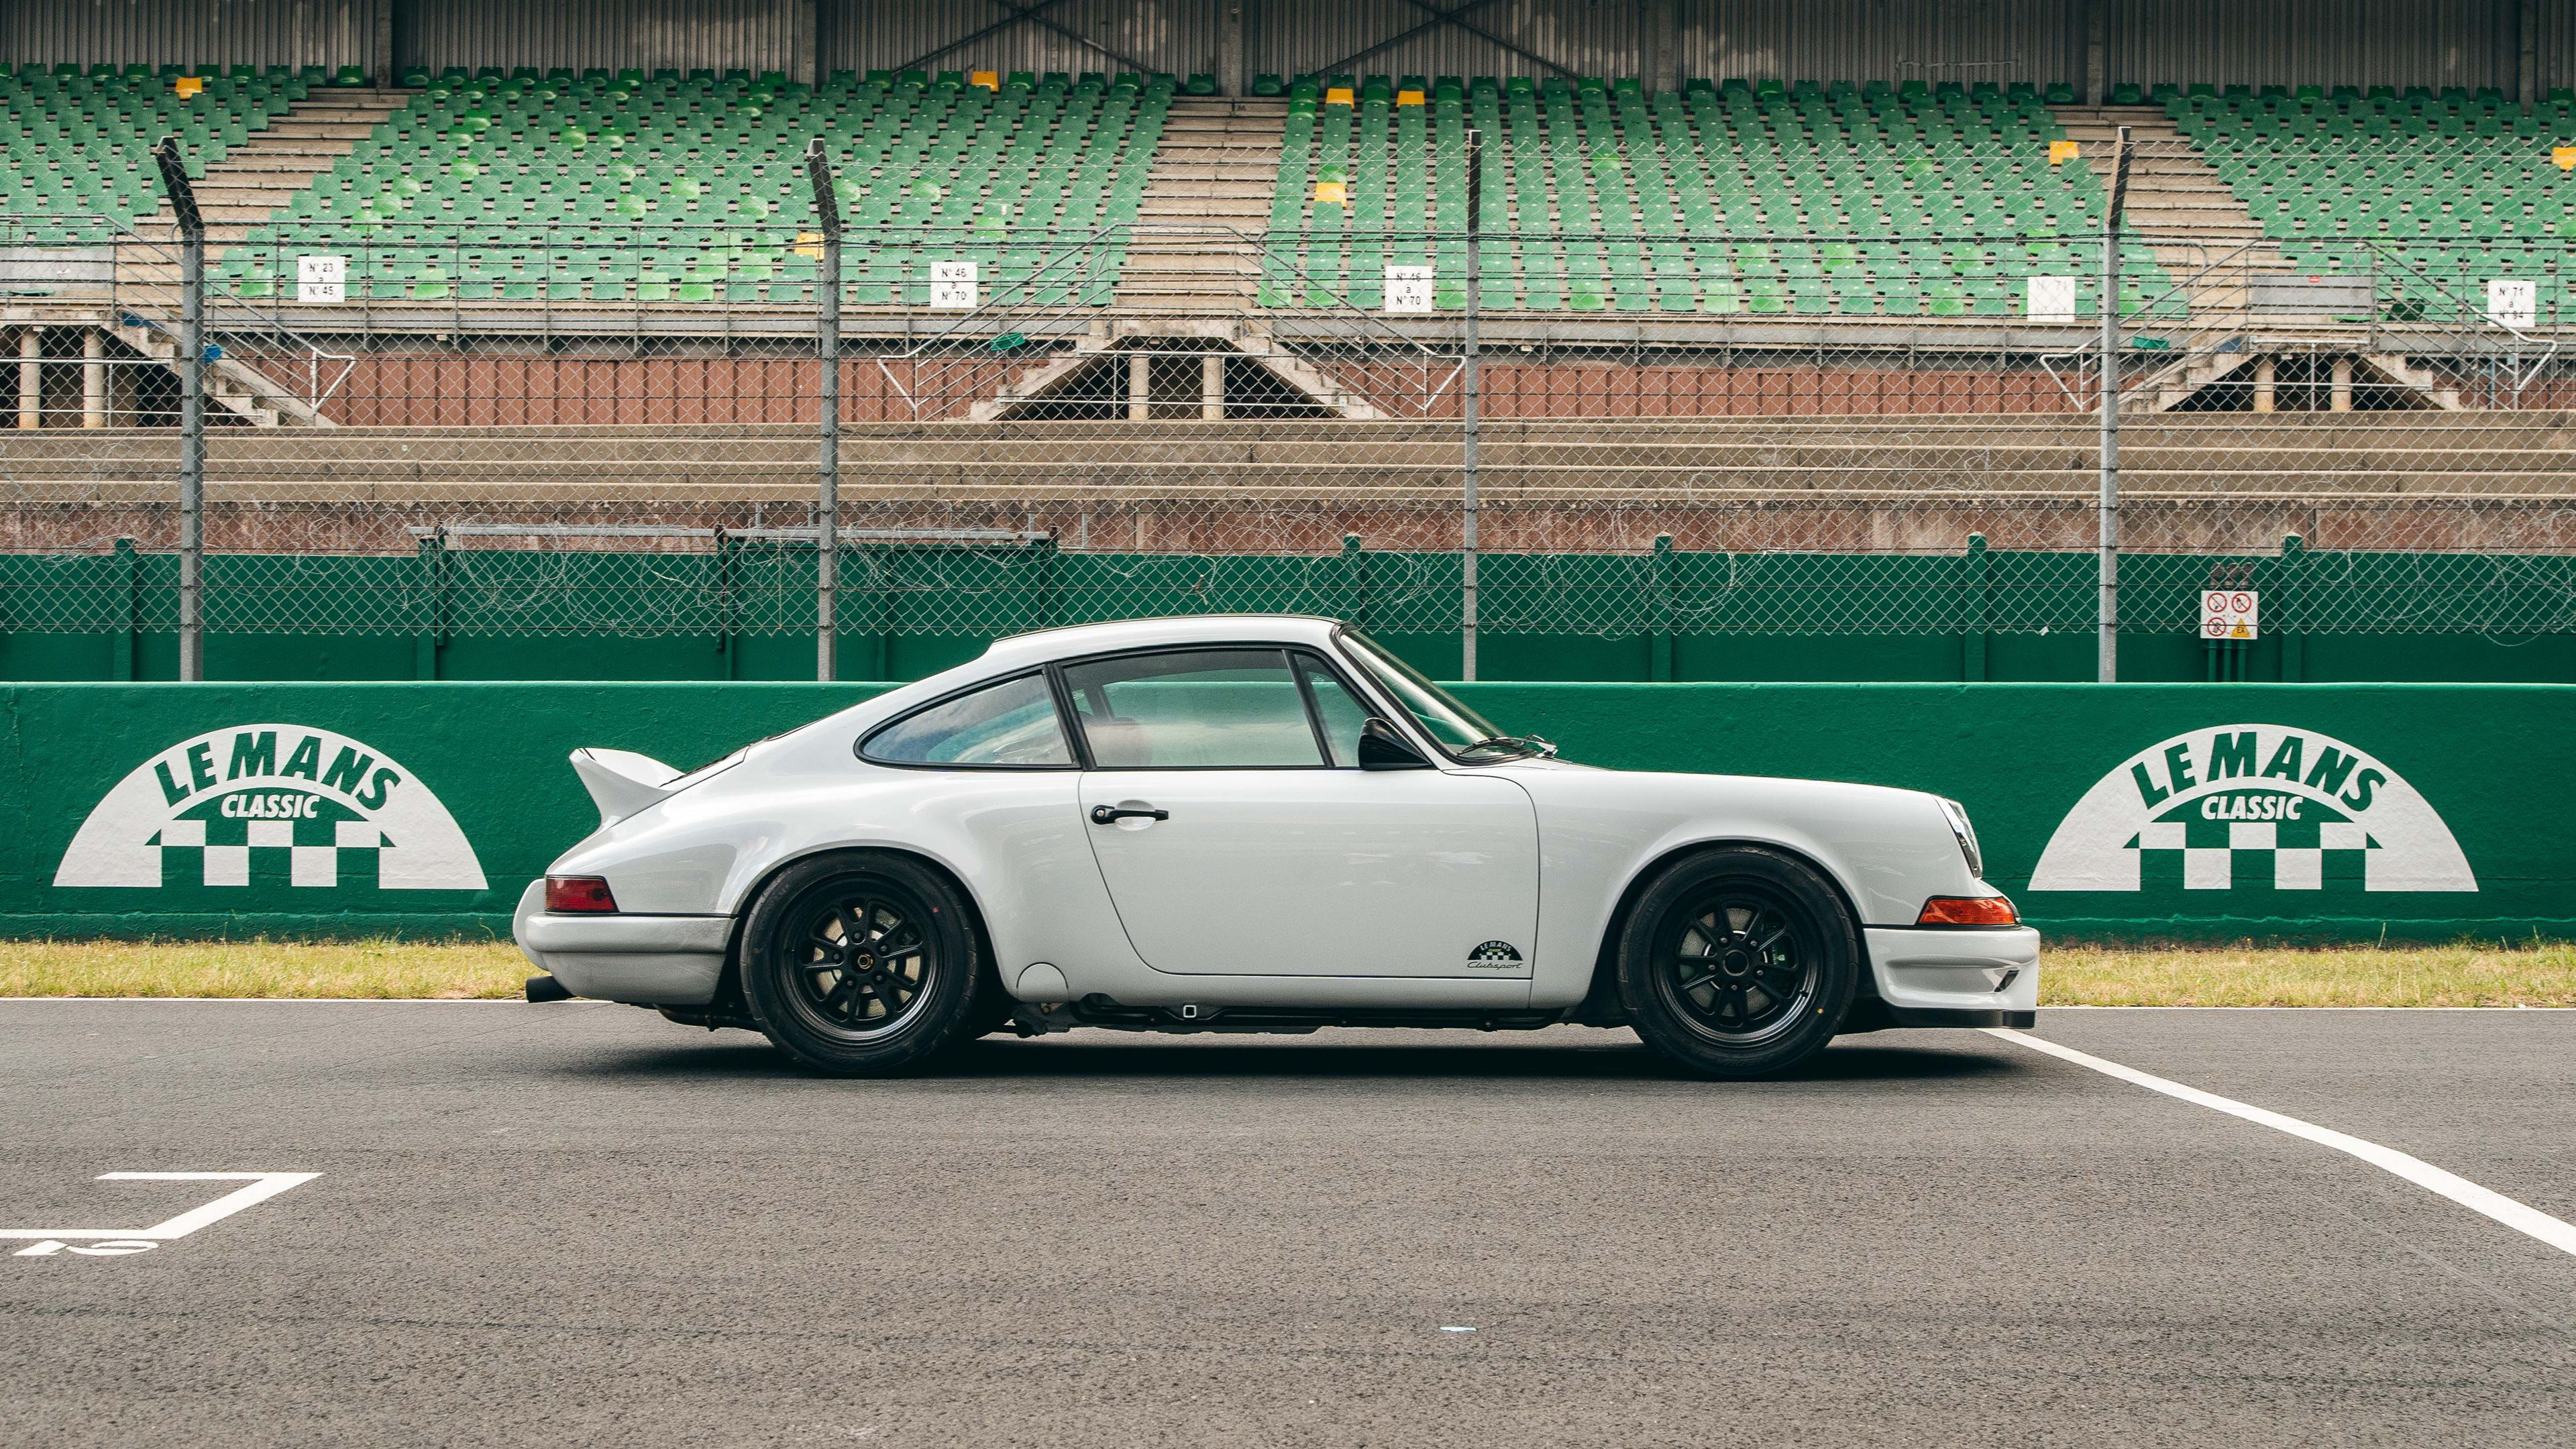 Ps Le Mans Classic Clubsport 2018 Side View Hd Wallpapers Cars Wallpapers 4k Wallpapers 2018 Cars Wallpapers Le Mans Porsche Car Wallpapers